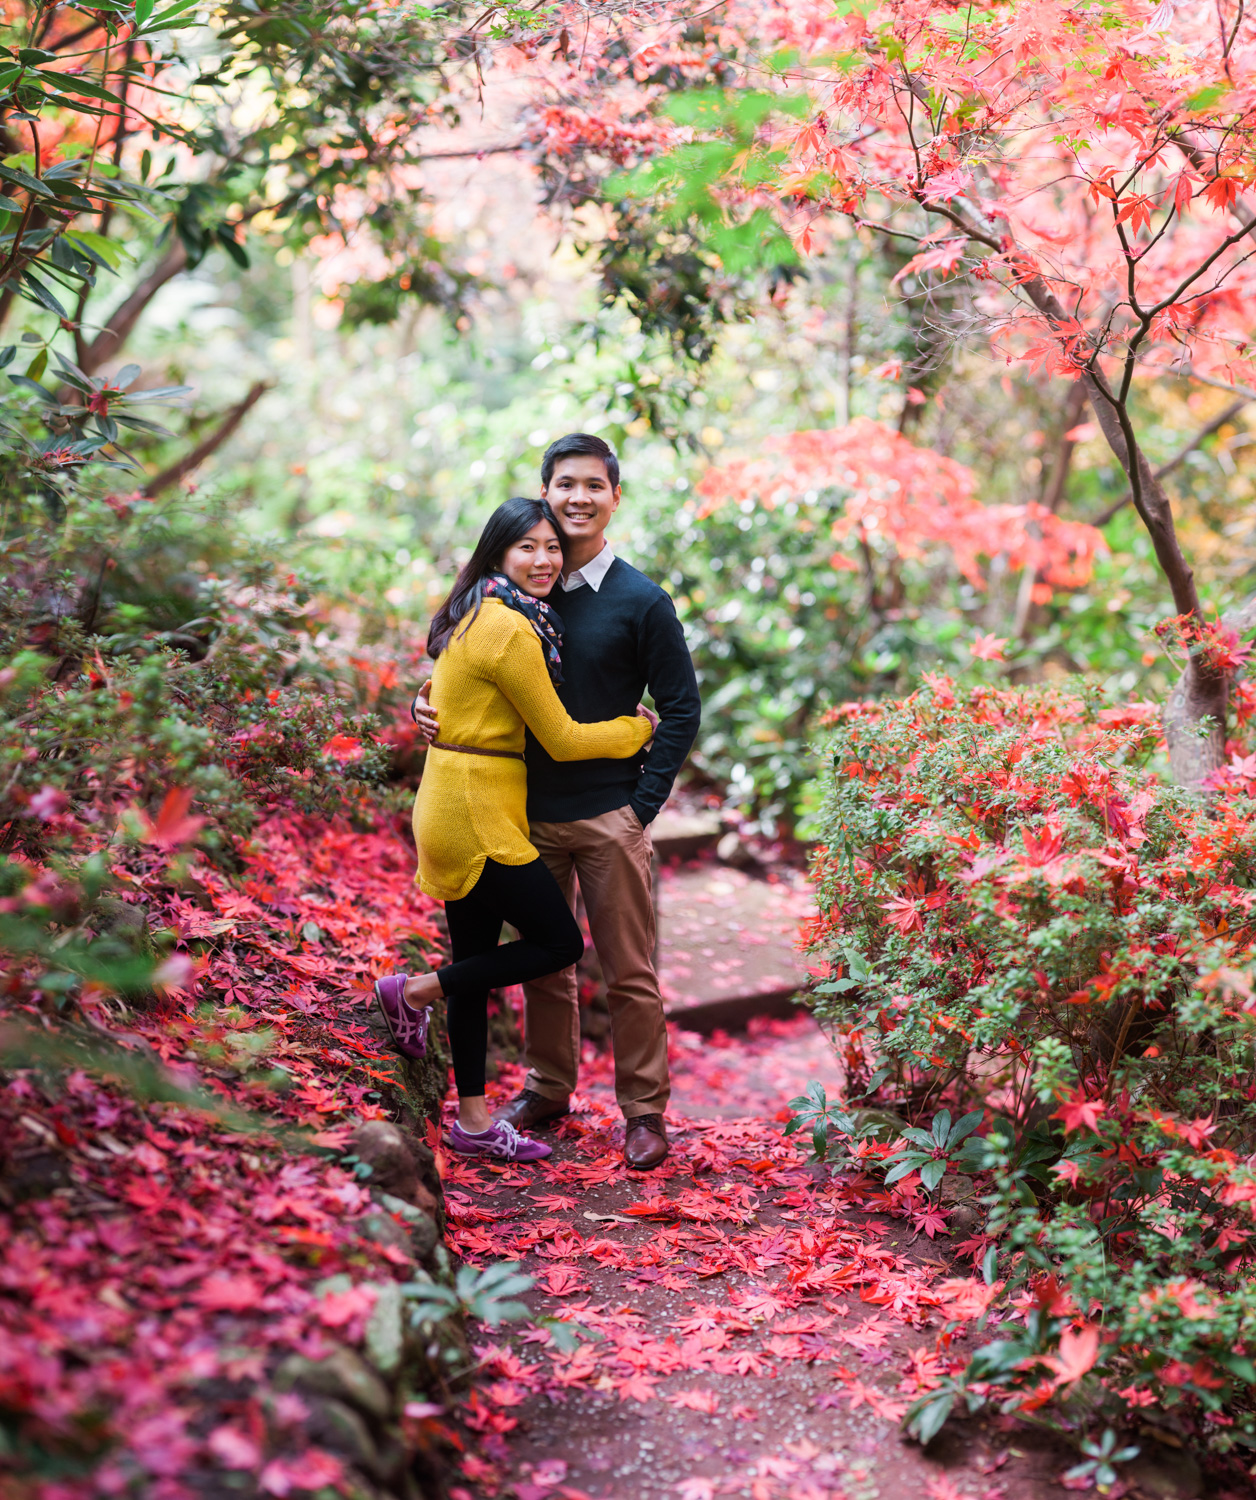 melbourne-australia-pre-wedding-casual-engagement-destination-wedding-autumn-themed